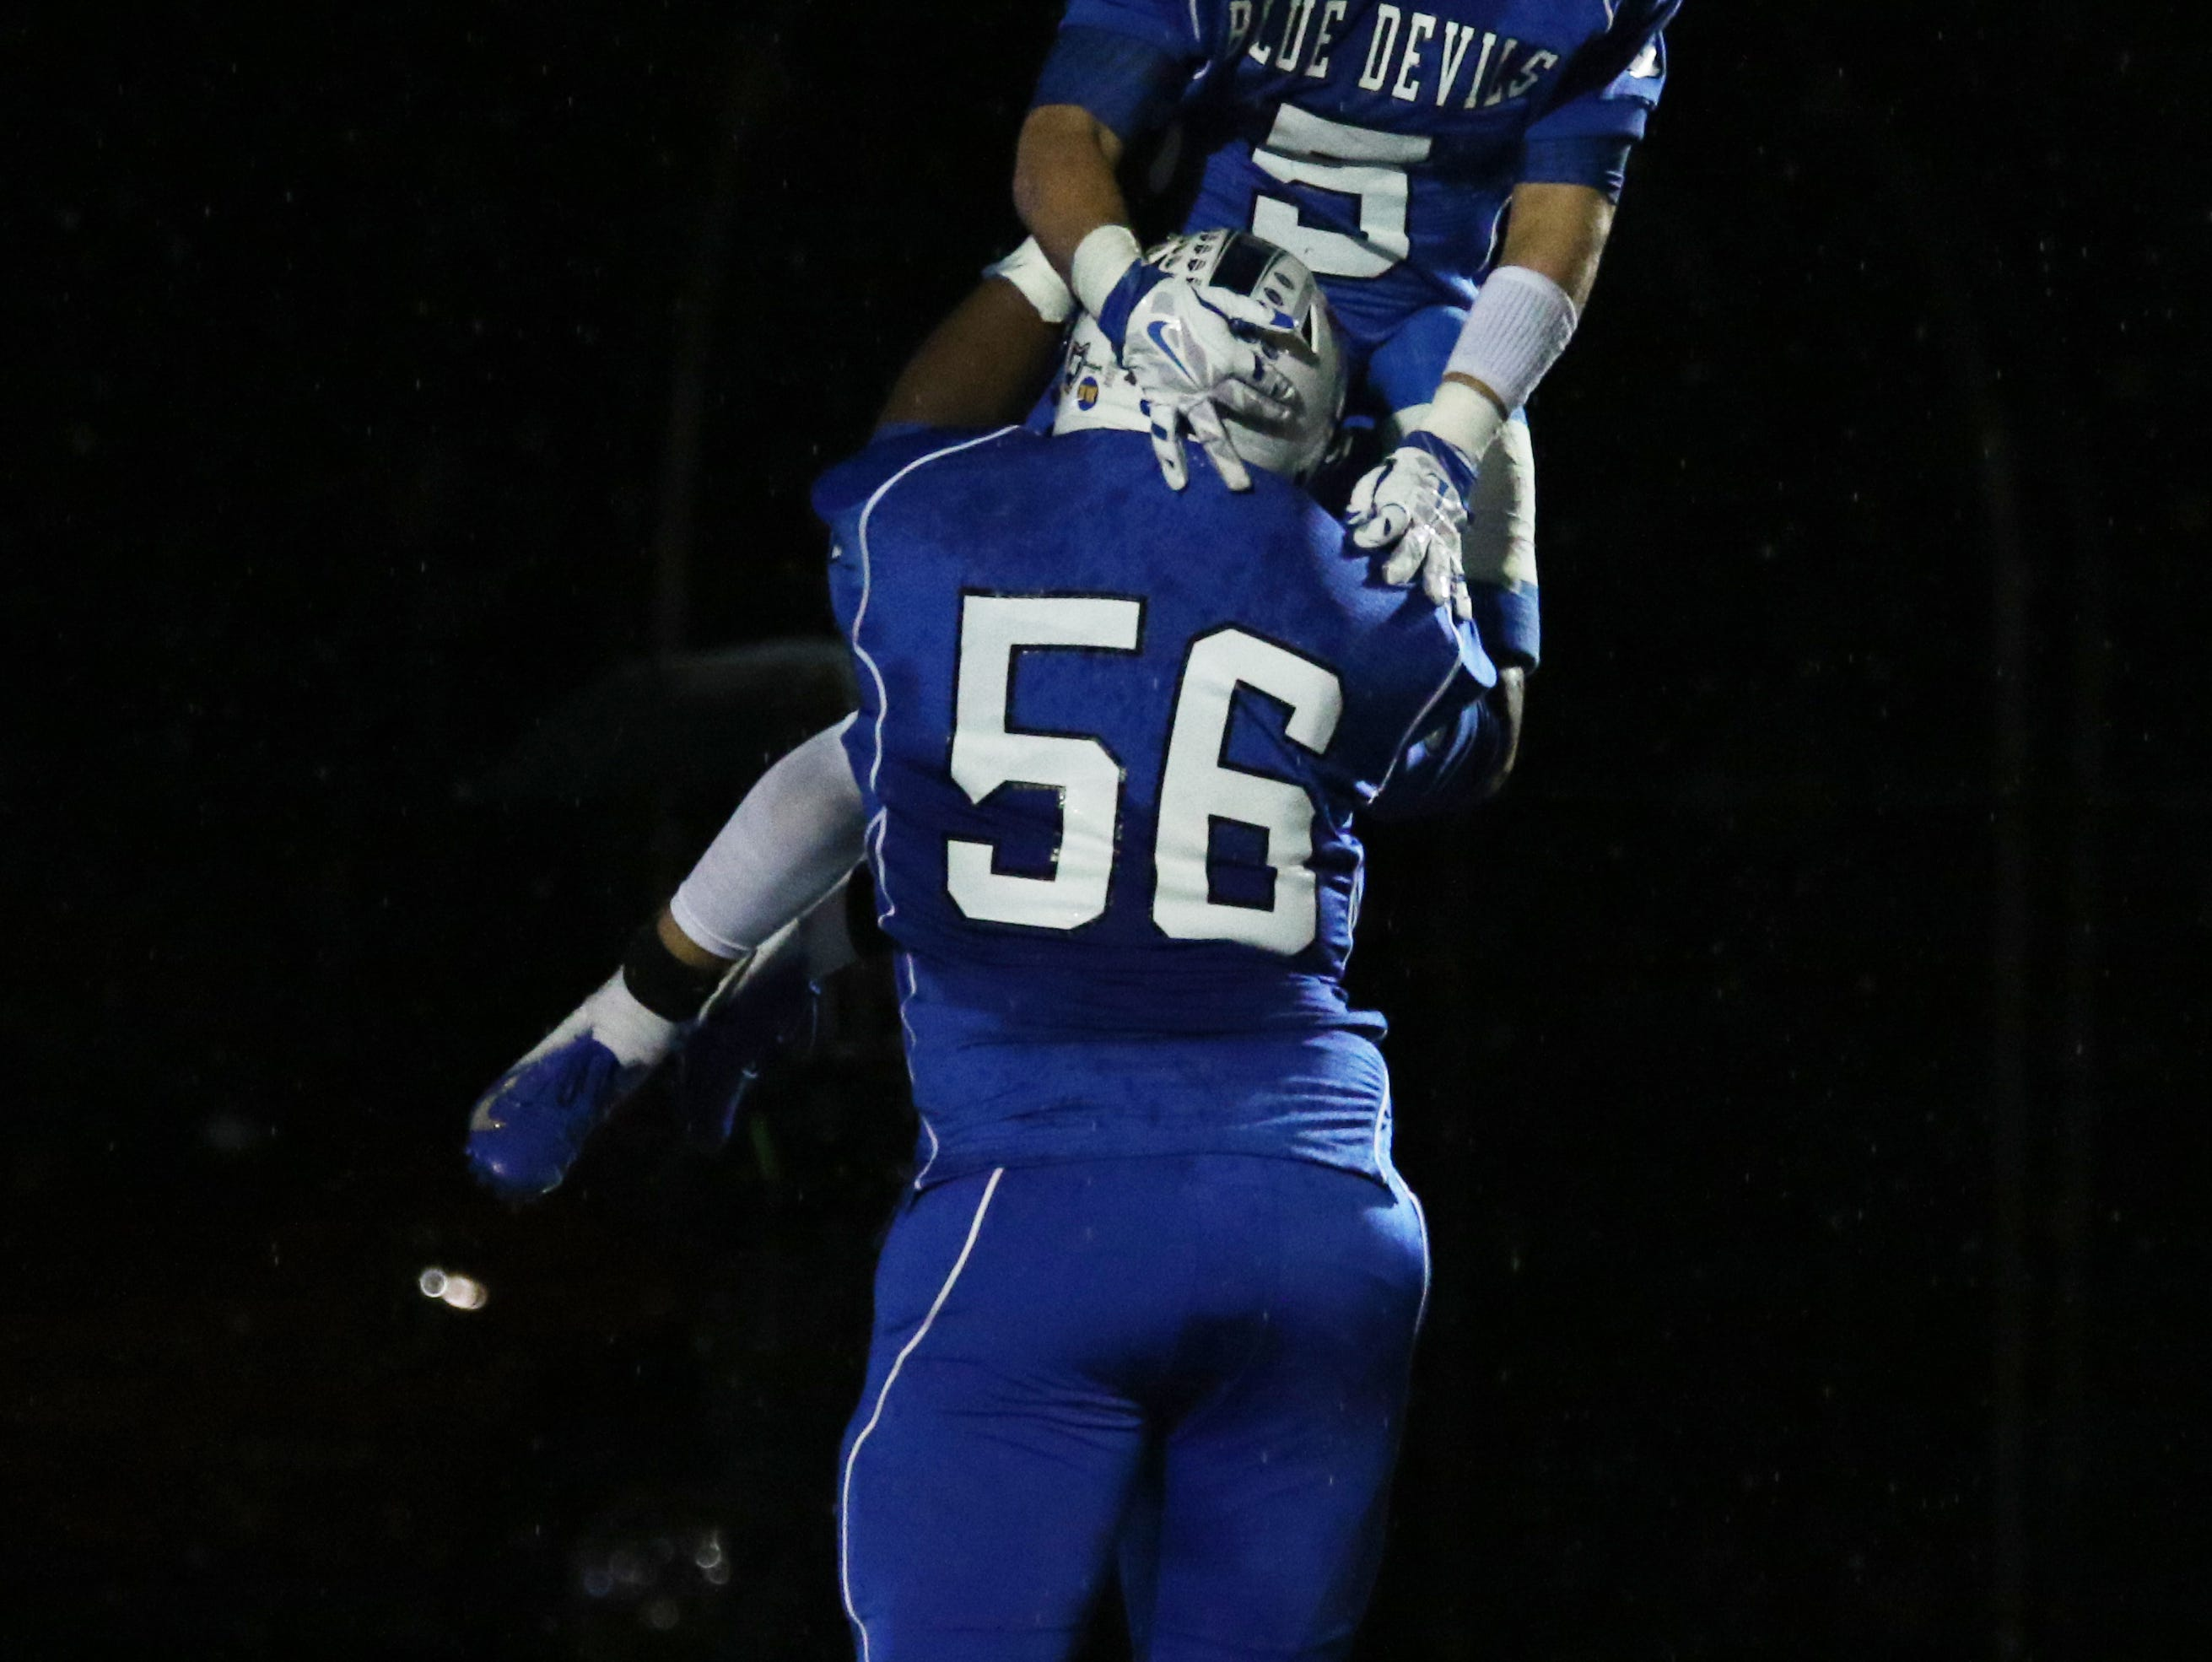 Zanesville's Jeremiah Hollins gives teammate JC Curtis a lift after Curtis' touchdown against New Philadelphia.